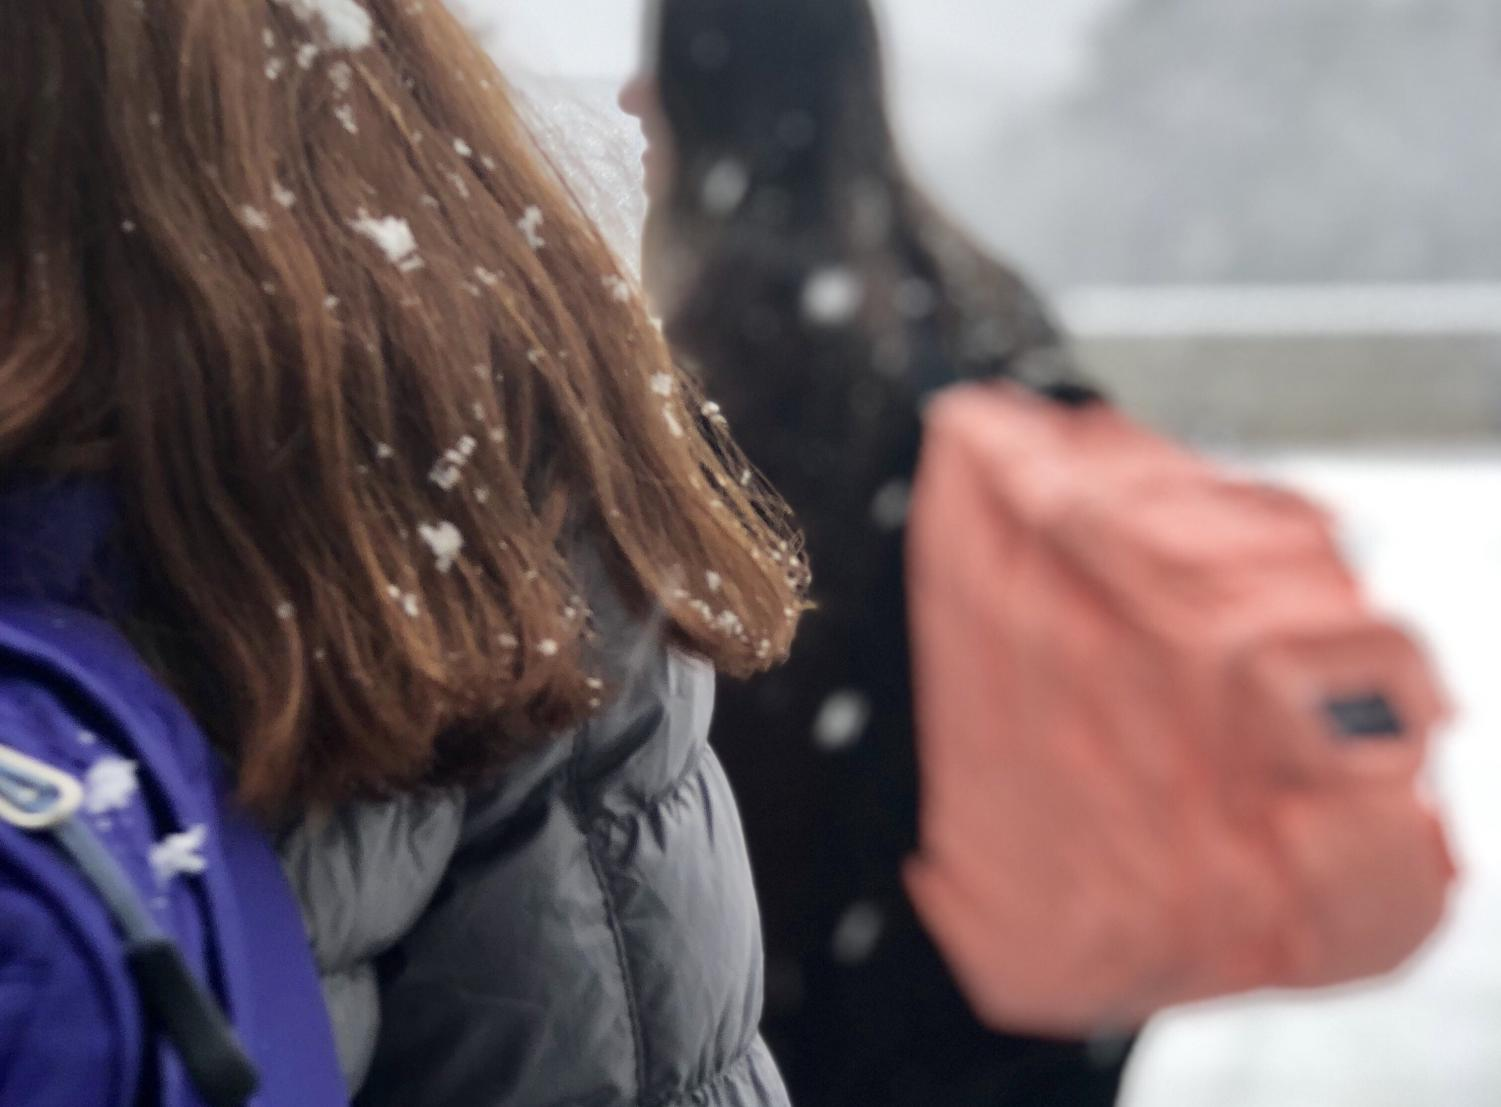 Students Nicole Arendt and Debbie Kitzler wear their backpacks when checking out the snow during class change.